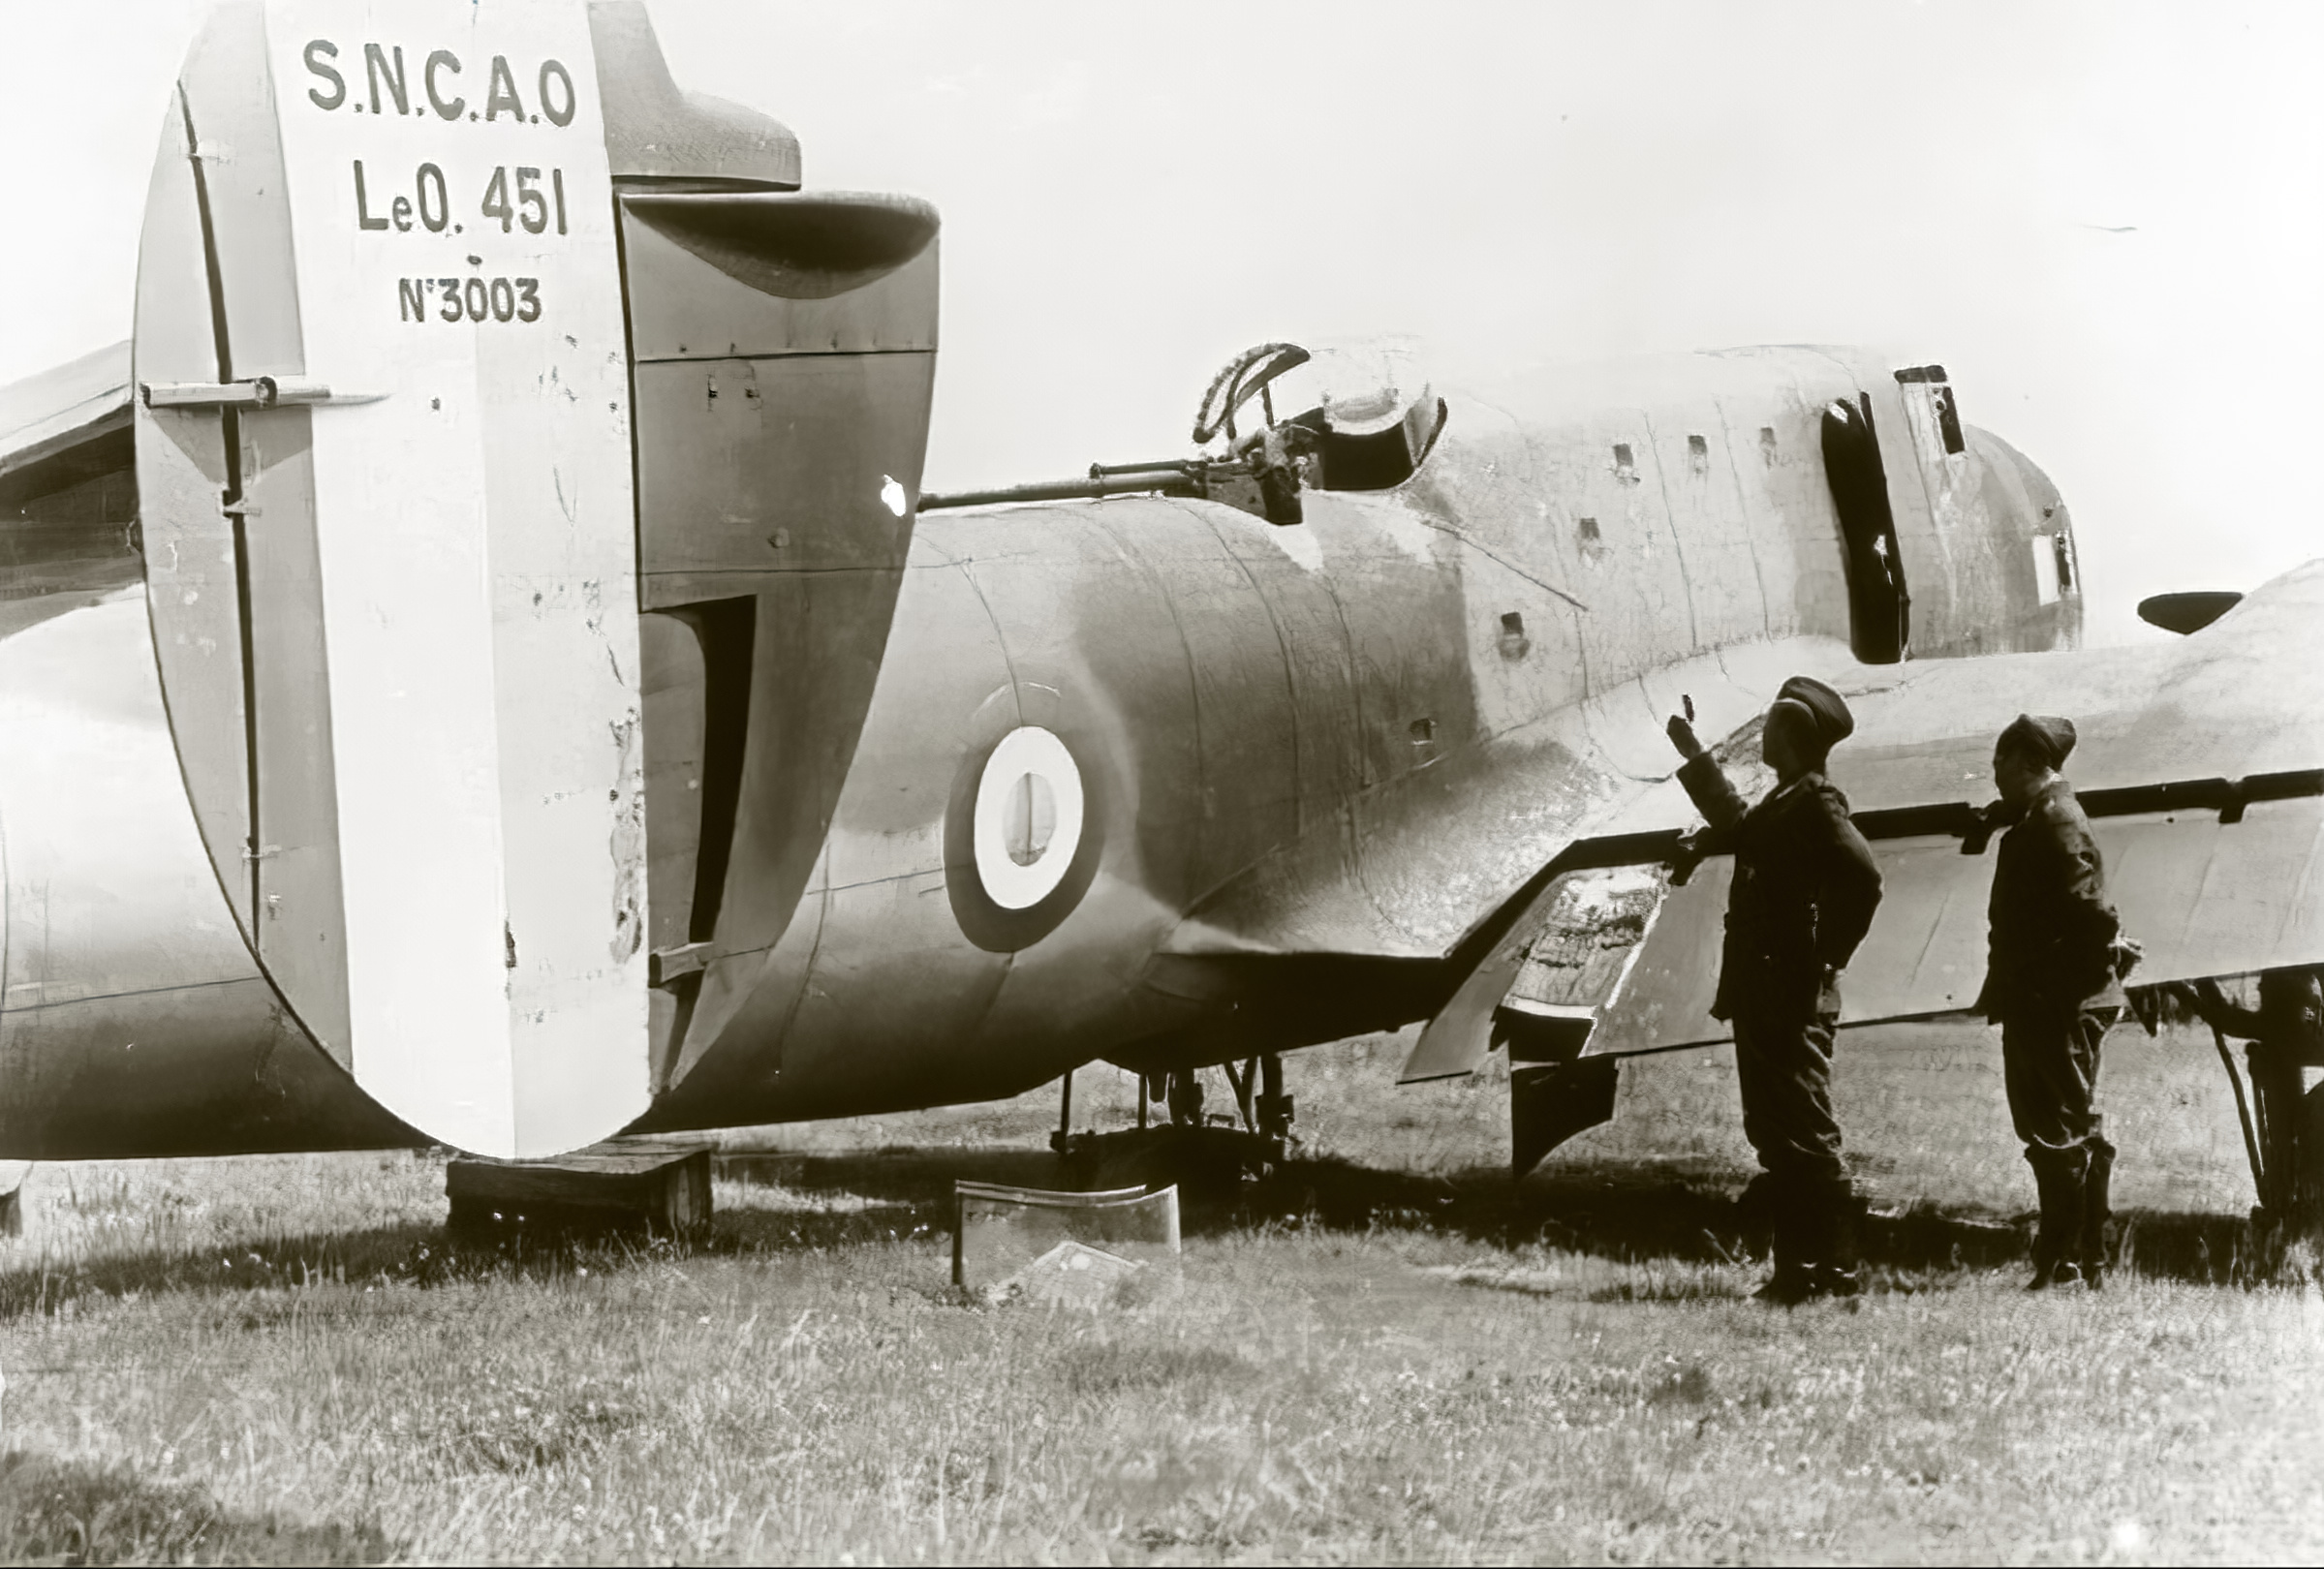 French Airforce Liore et Olivier LeO 451 no3003 being inspected by German forces France May Jun 1940 ebay 01